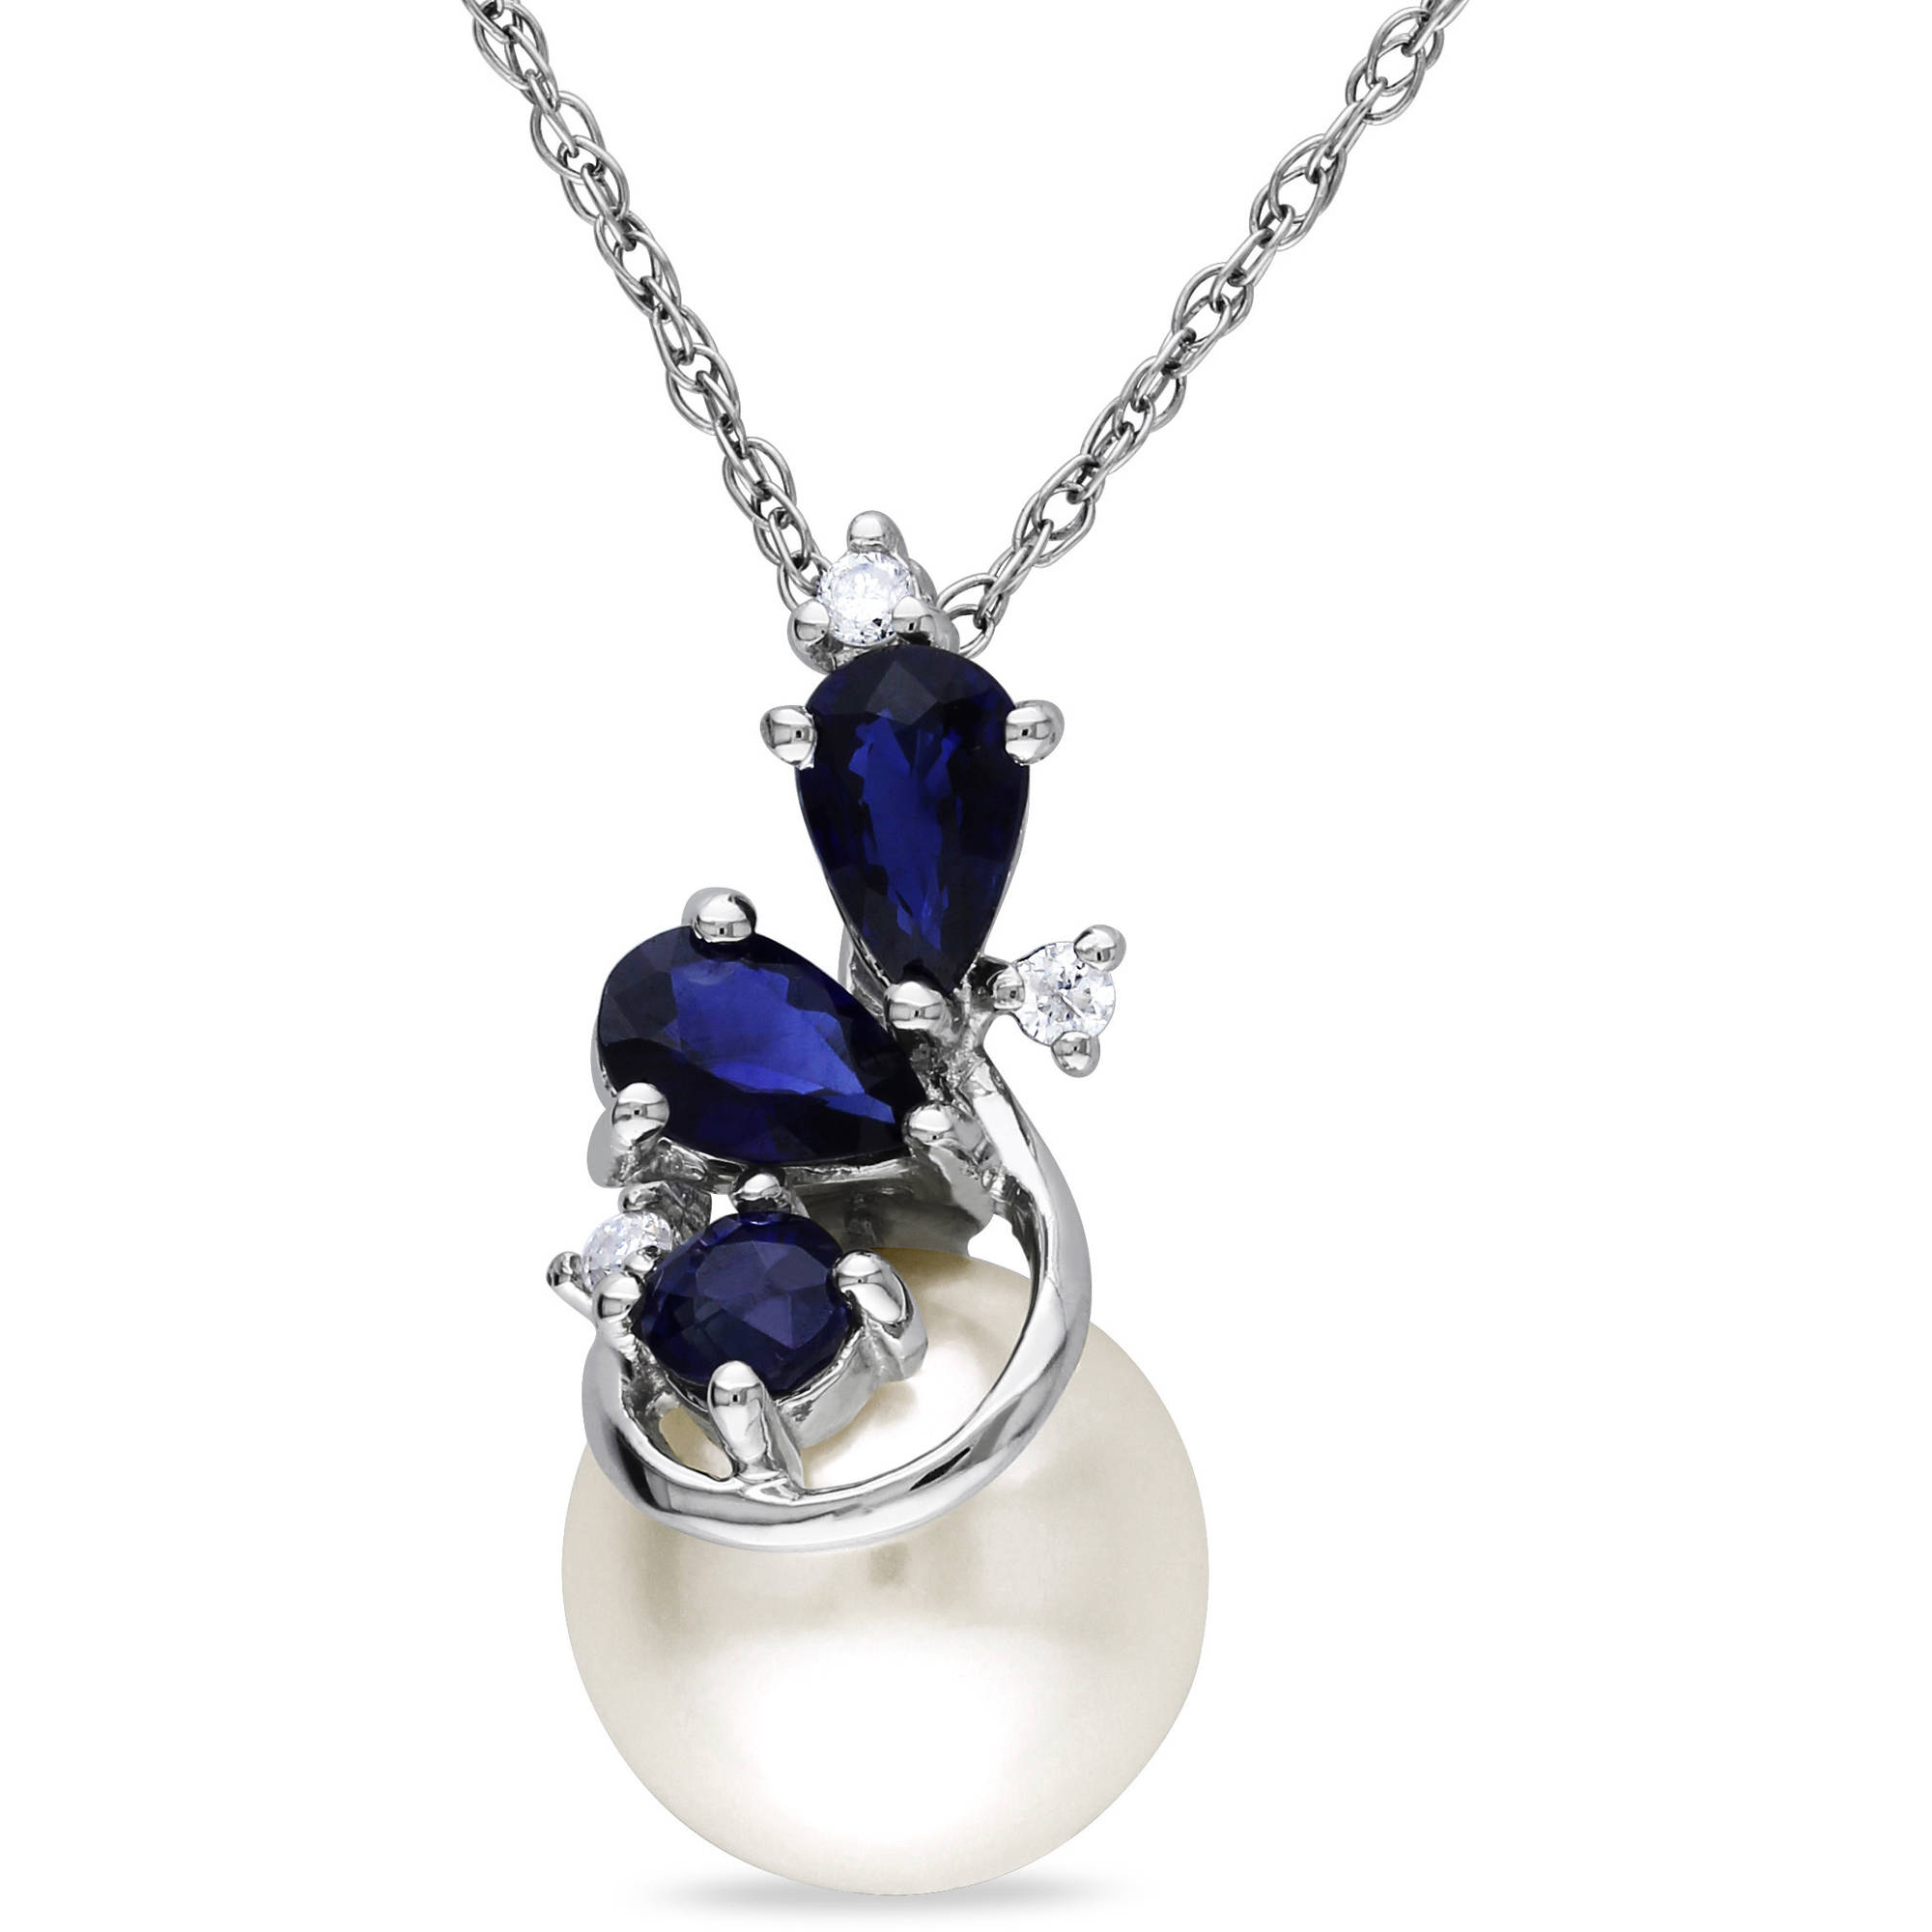 Miabella 8.5-9mm White Cultured Freshwater Pearl and 5 8 Carat T.G.W. Sapphire with Diamond-Accent Sterling Silver... by Delmar Manufacturing LLC